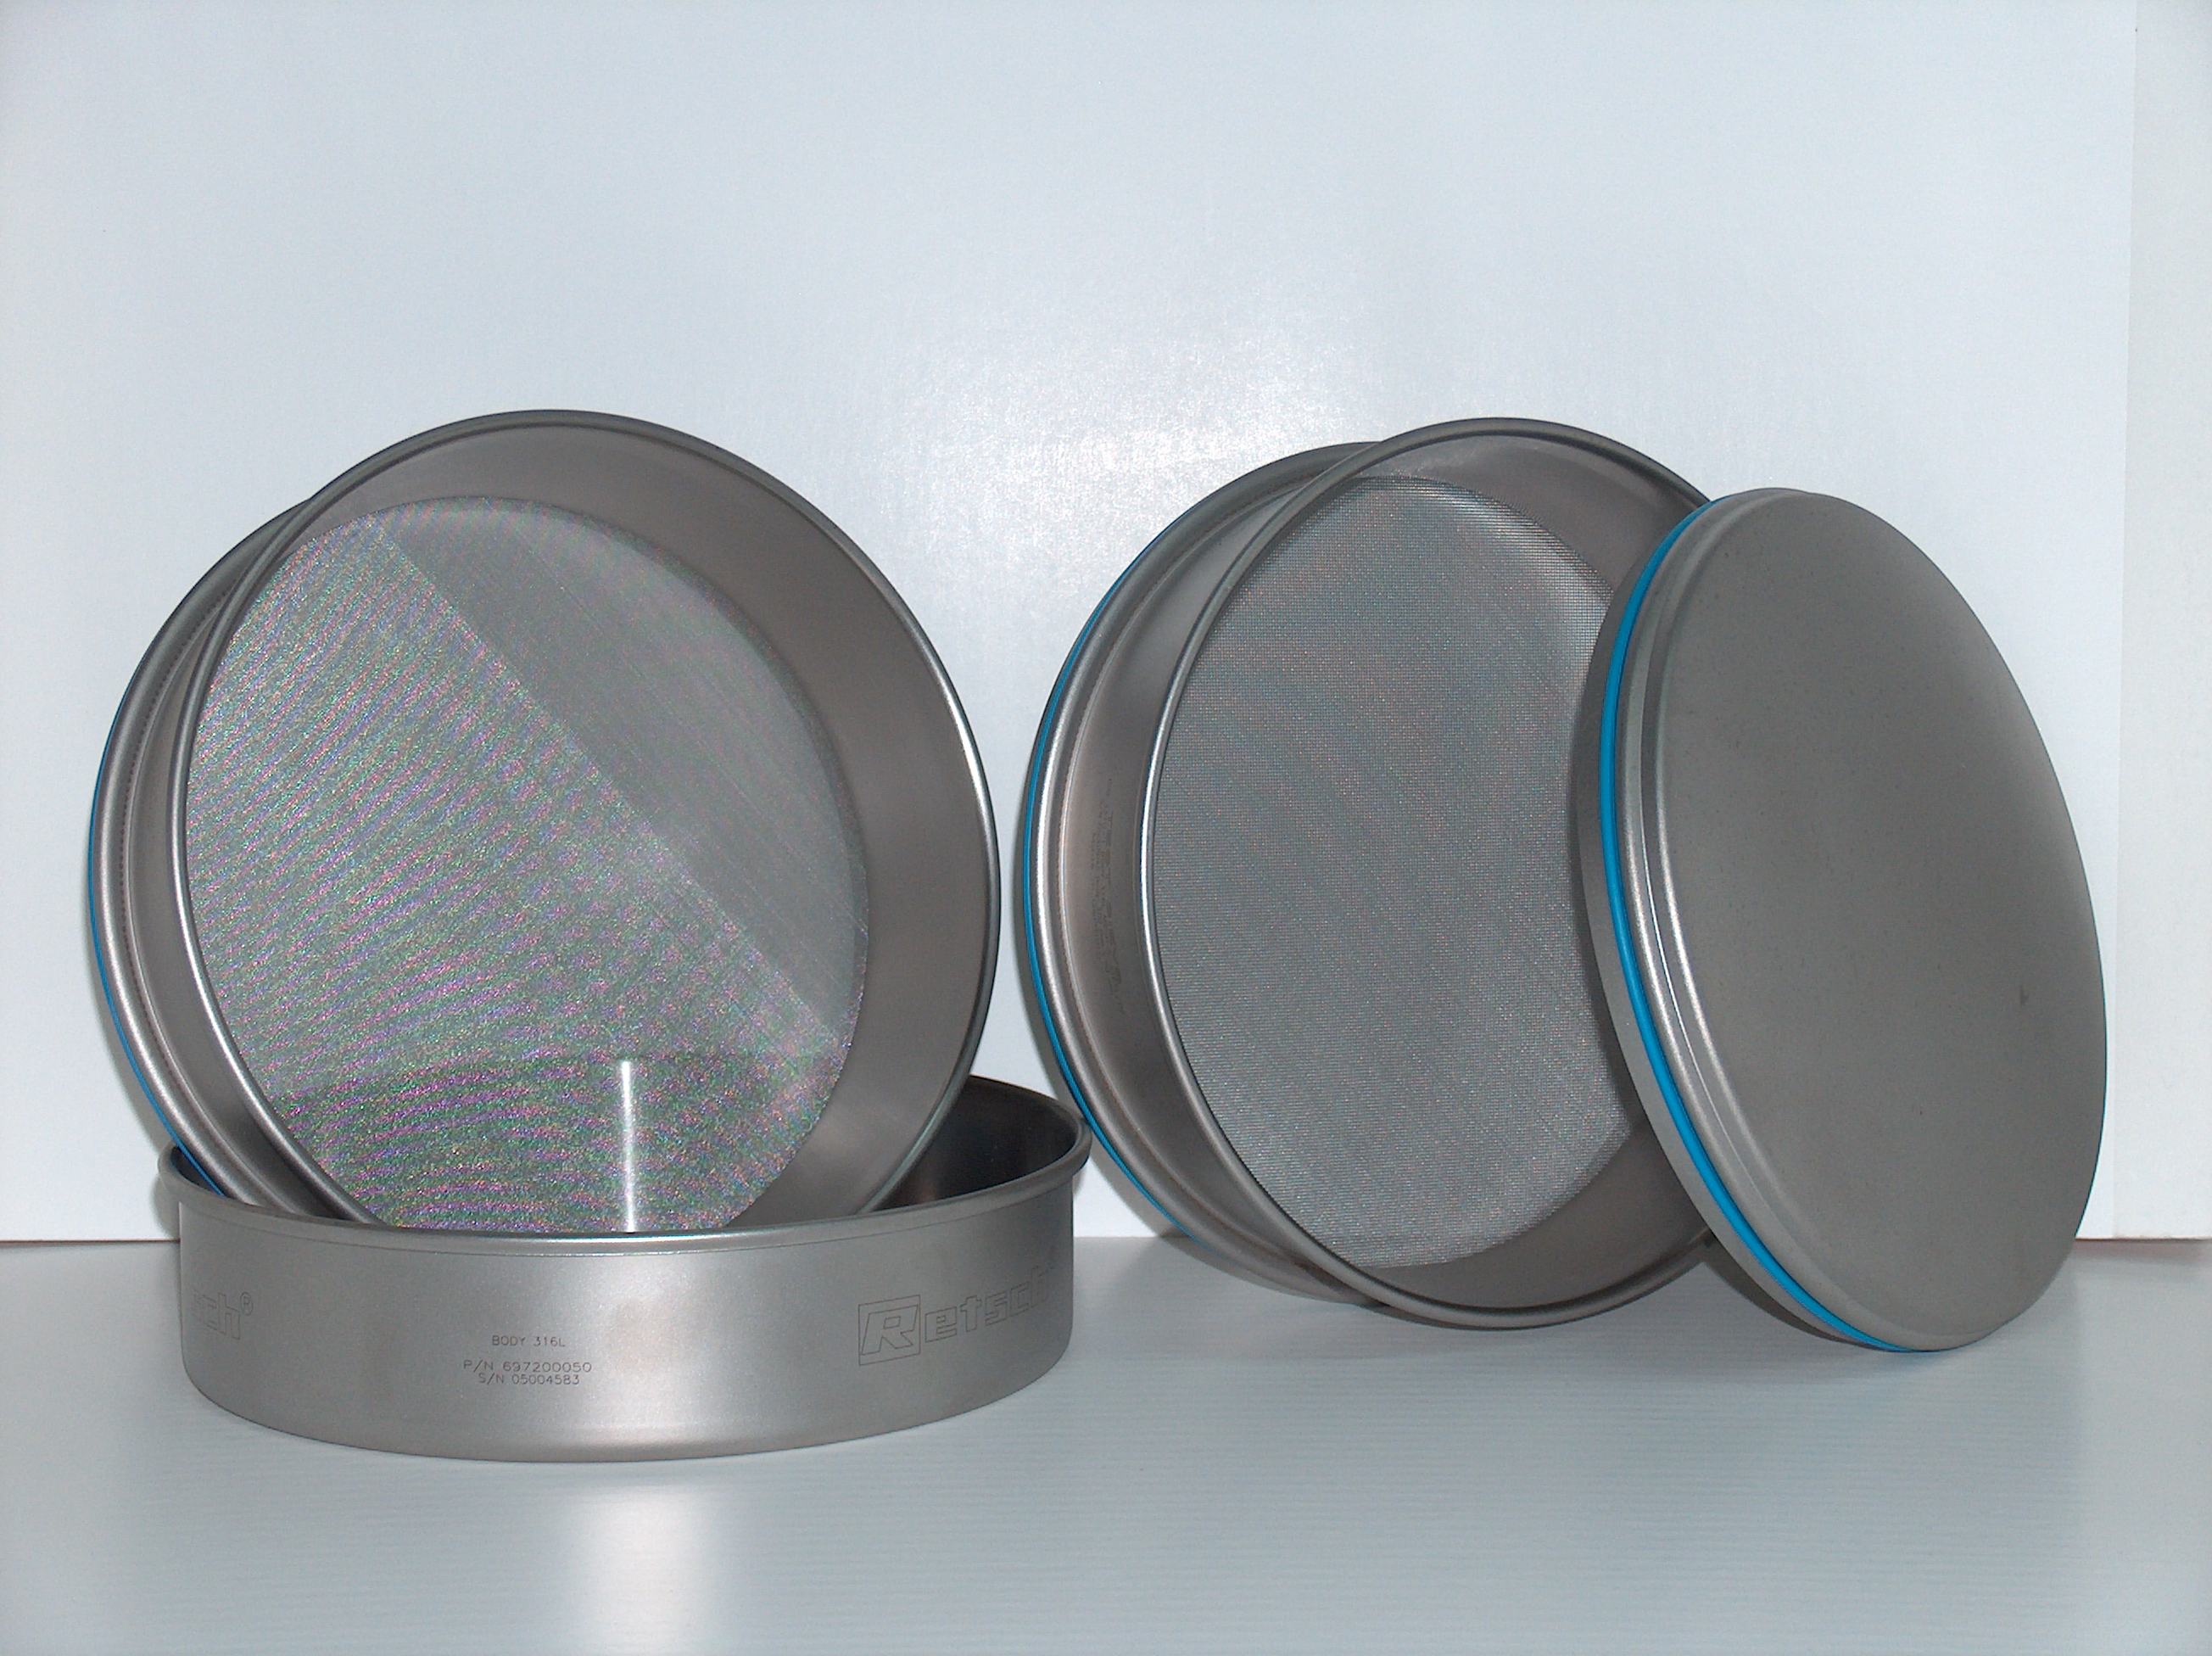 image of a tamis strainer that is shaped like a snare drum and has a mesh surface used for sifting